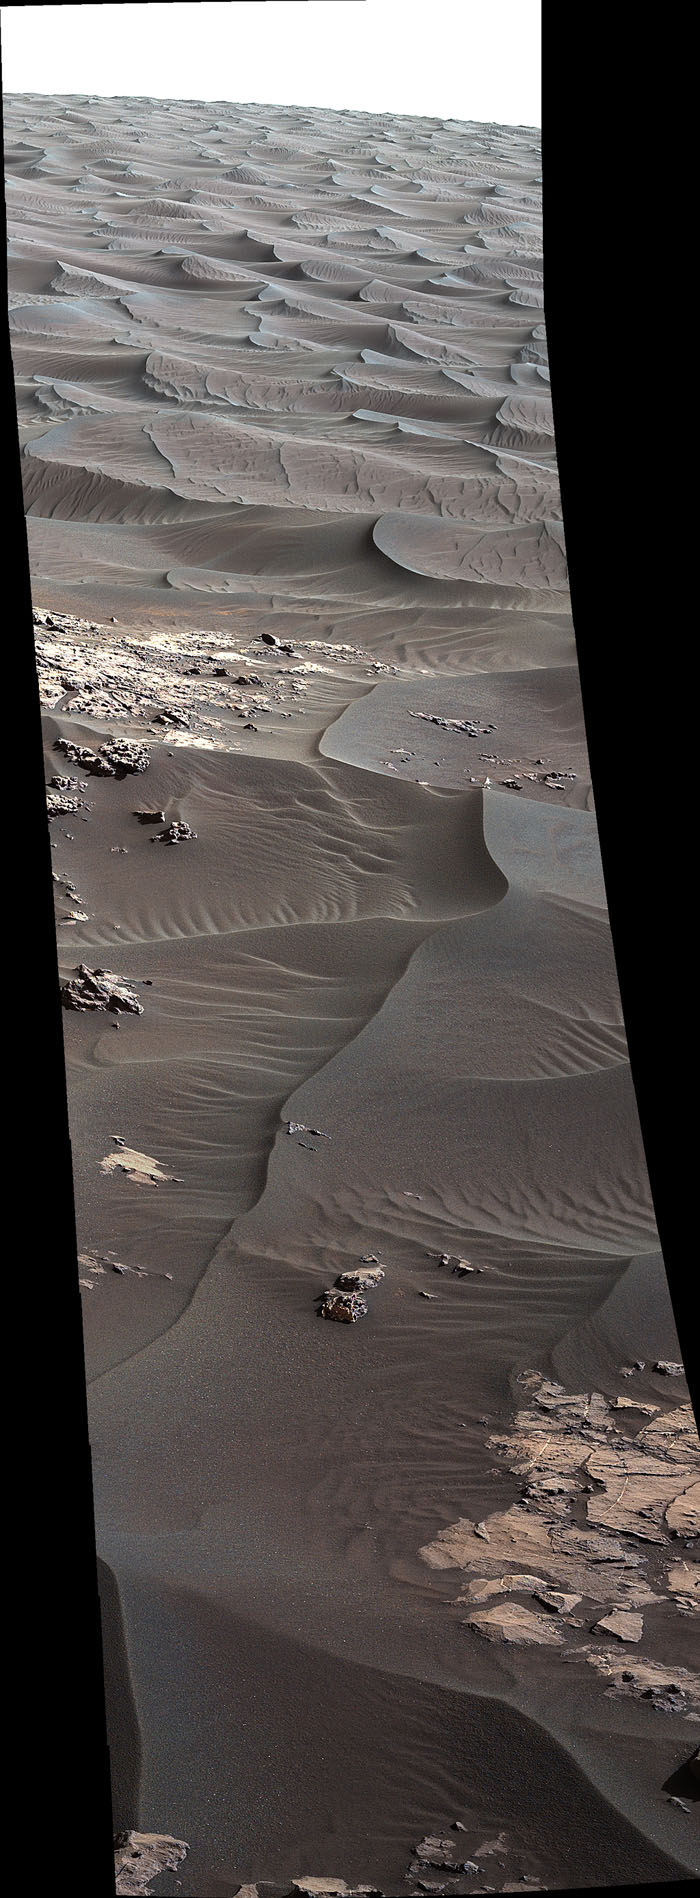 The rippled surface of the first Martian sand dune ever studied up close fills this view of 'High Dune' from the Mastcam on NASA's Curiosity rover. This site is part of the 'Bagnold Dunes' field along the northwestern flank of Mount Sharp.